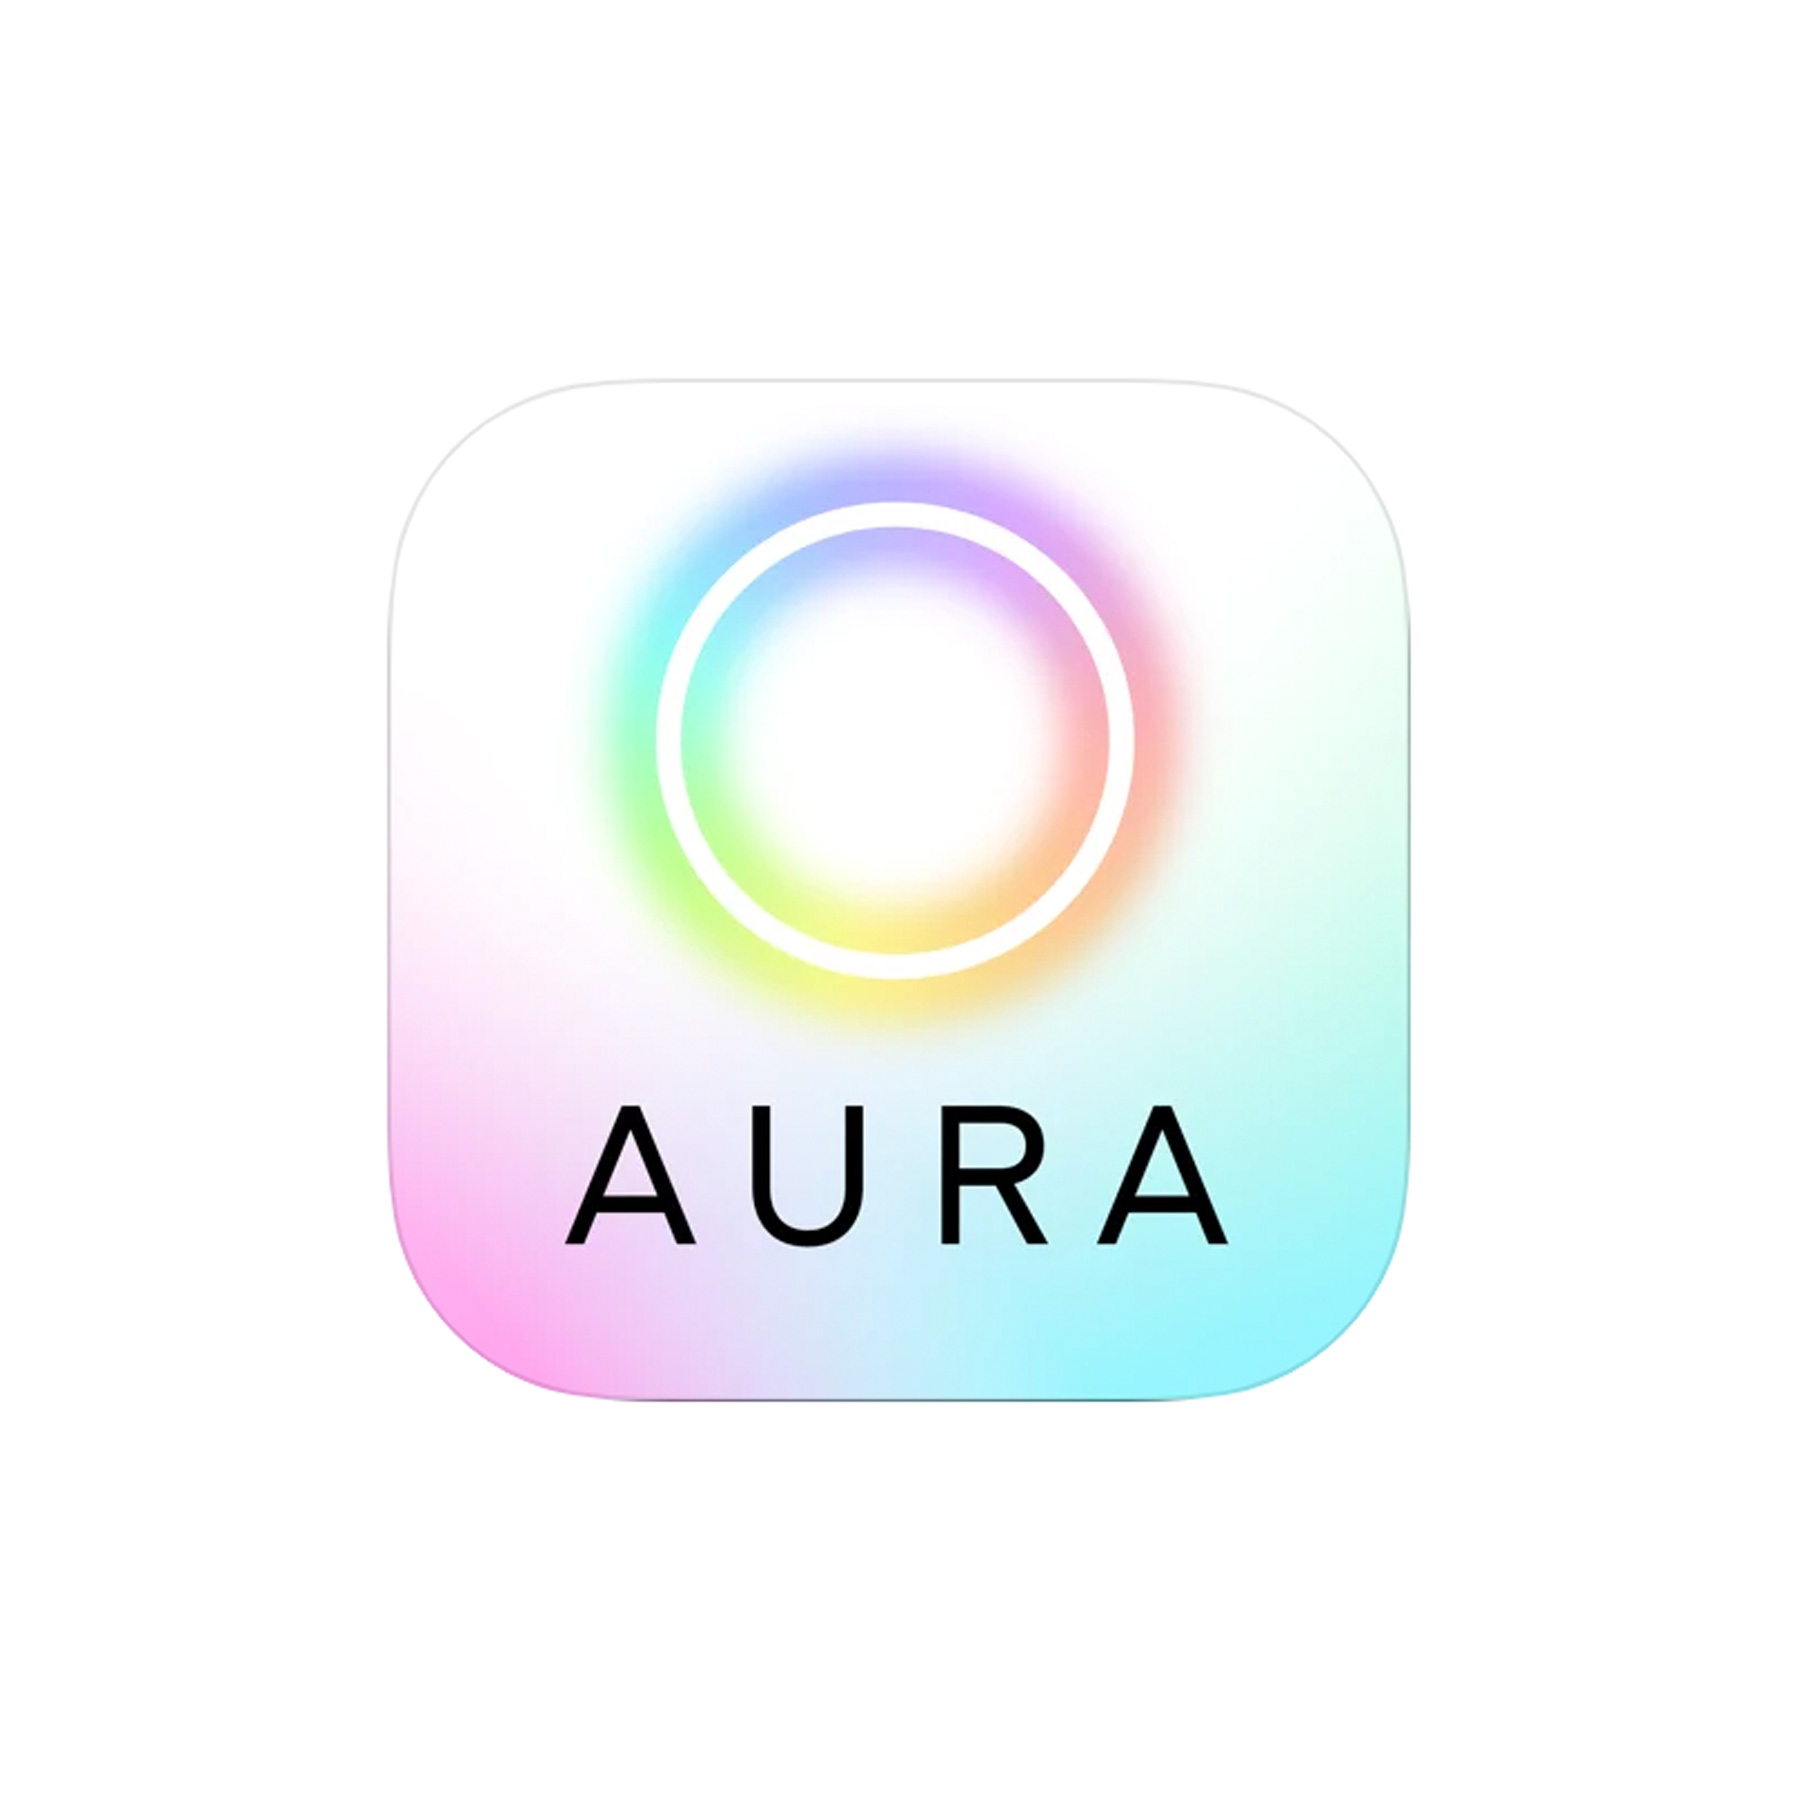 Best Meditation Apps 2020: Aura meditation app